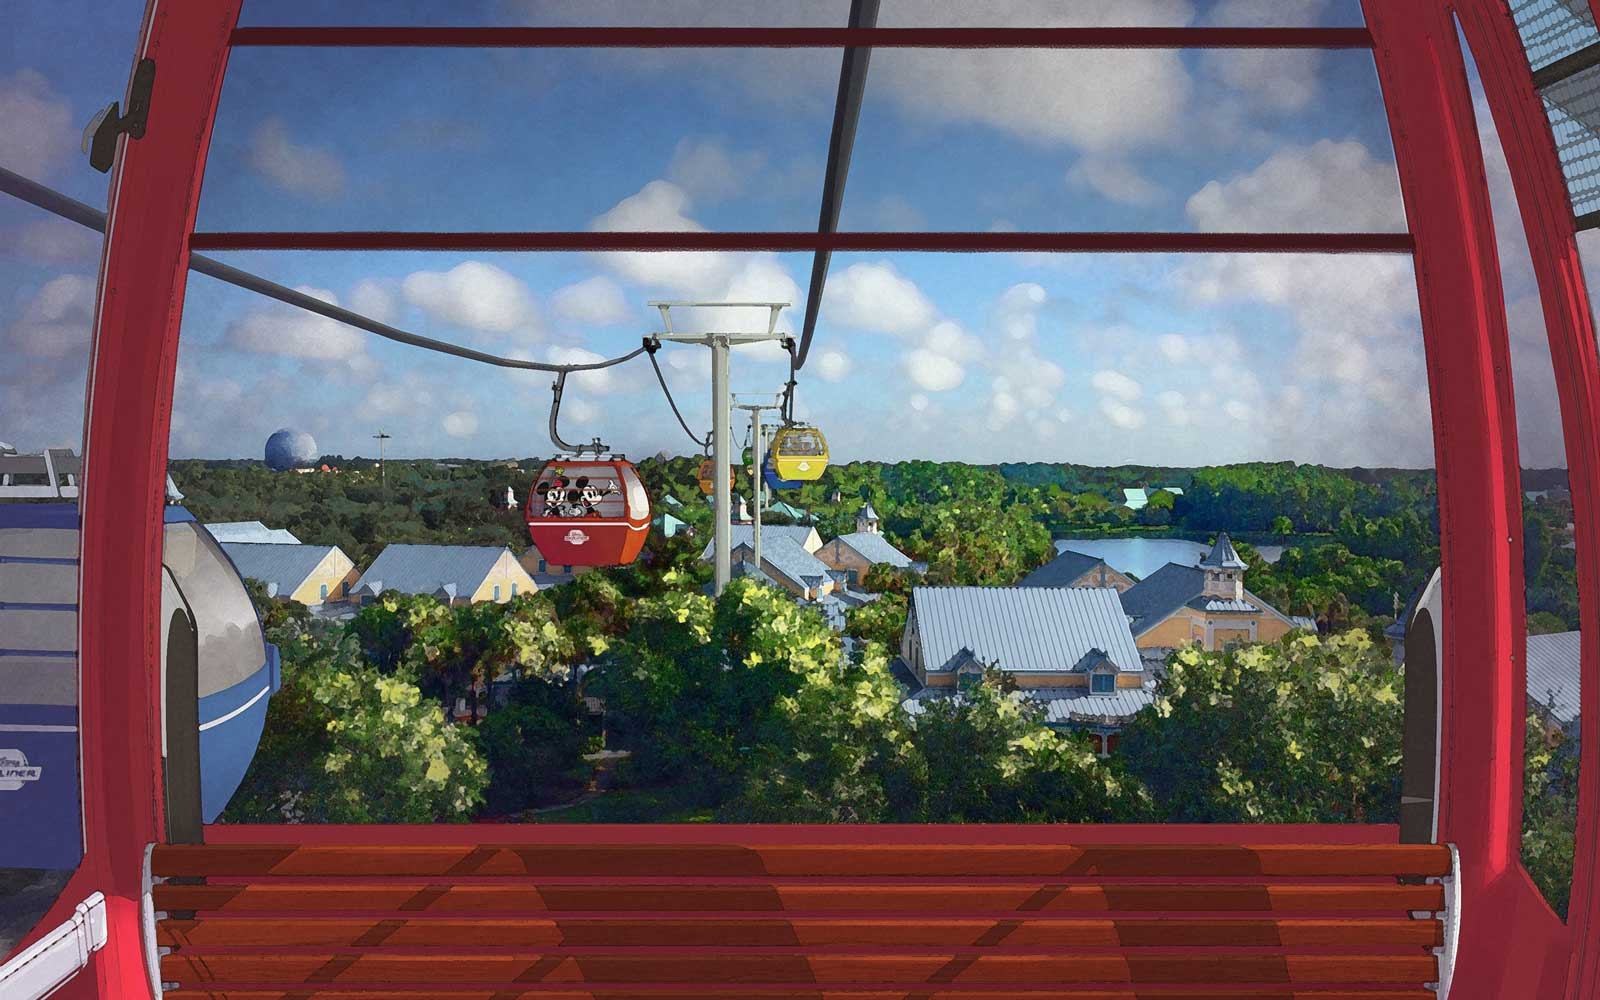 Disney Unveils New Images and Details About Sky-high Gondola Transportation System Coming to Parks and Resorts